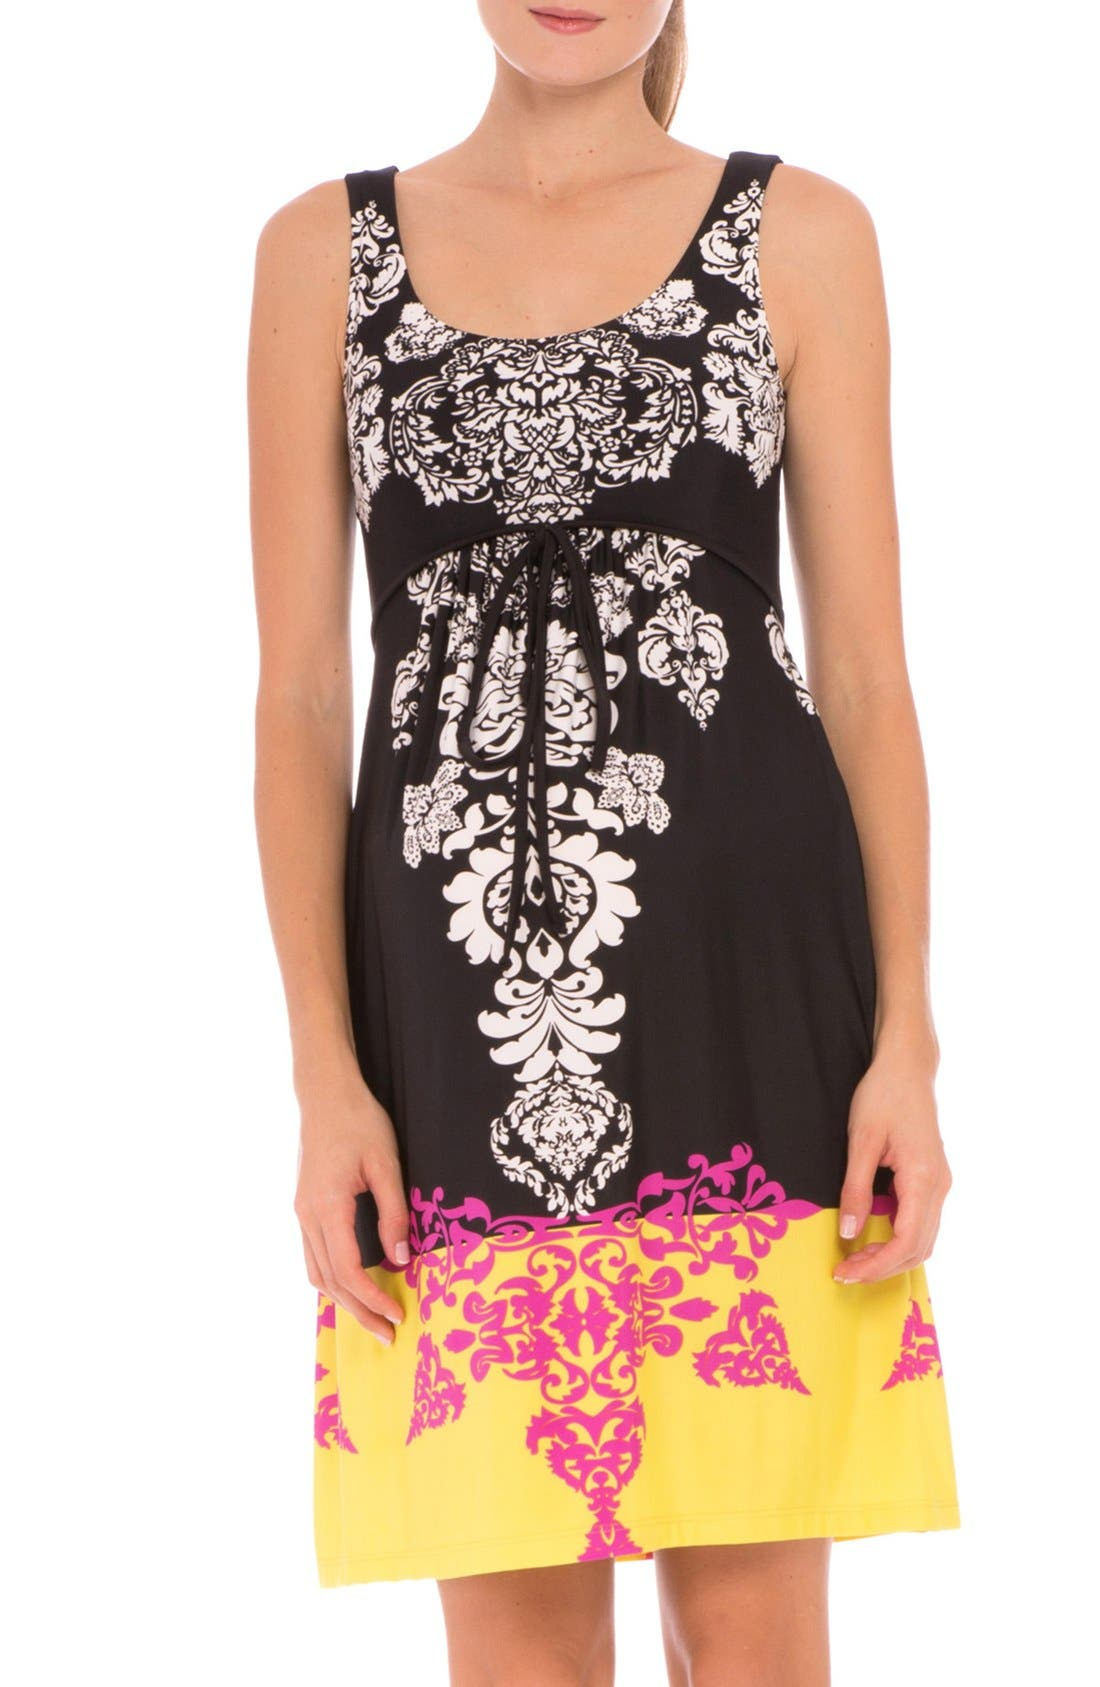 'Eloise' Graphic Maternity Dress,                         Main,                         color, BLACK/ YELLOW PRINT